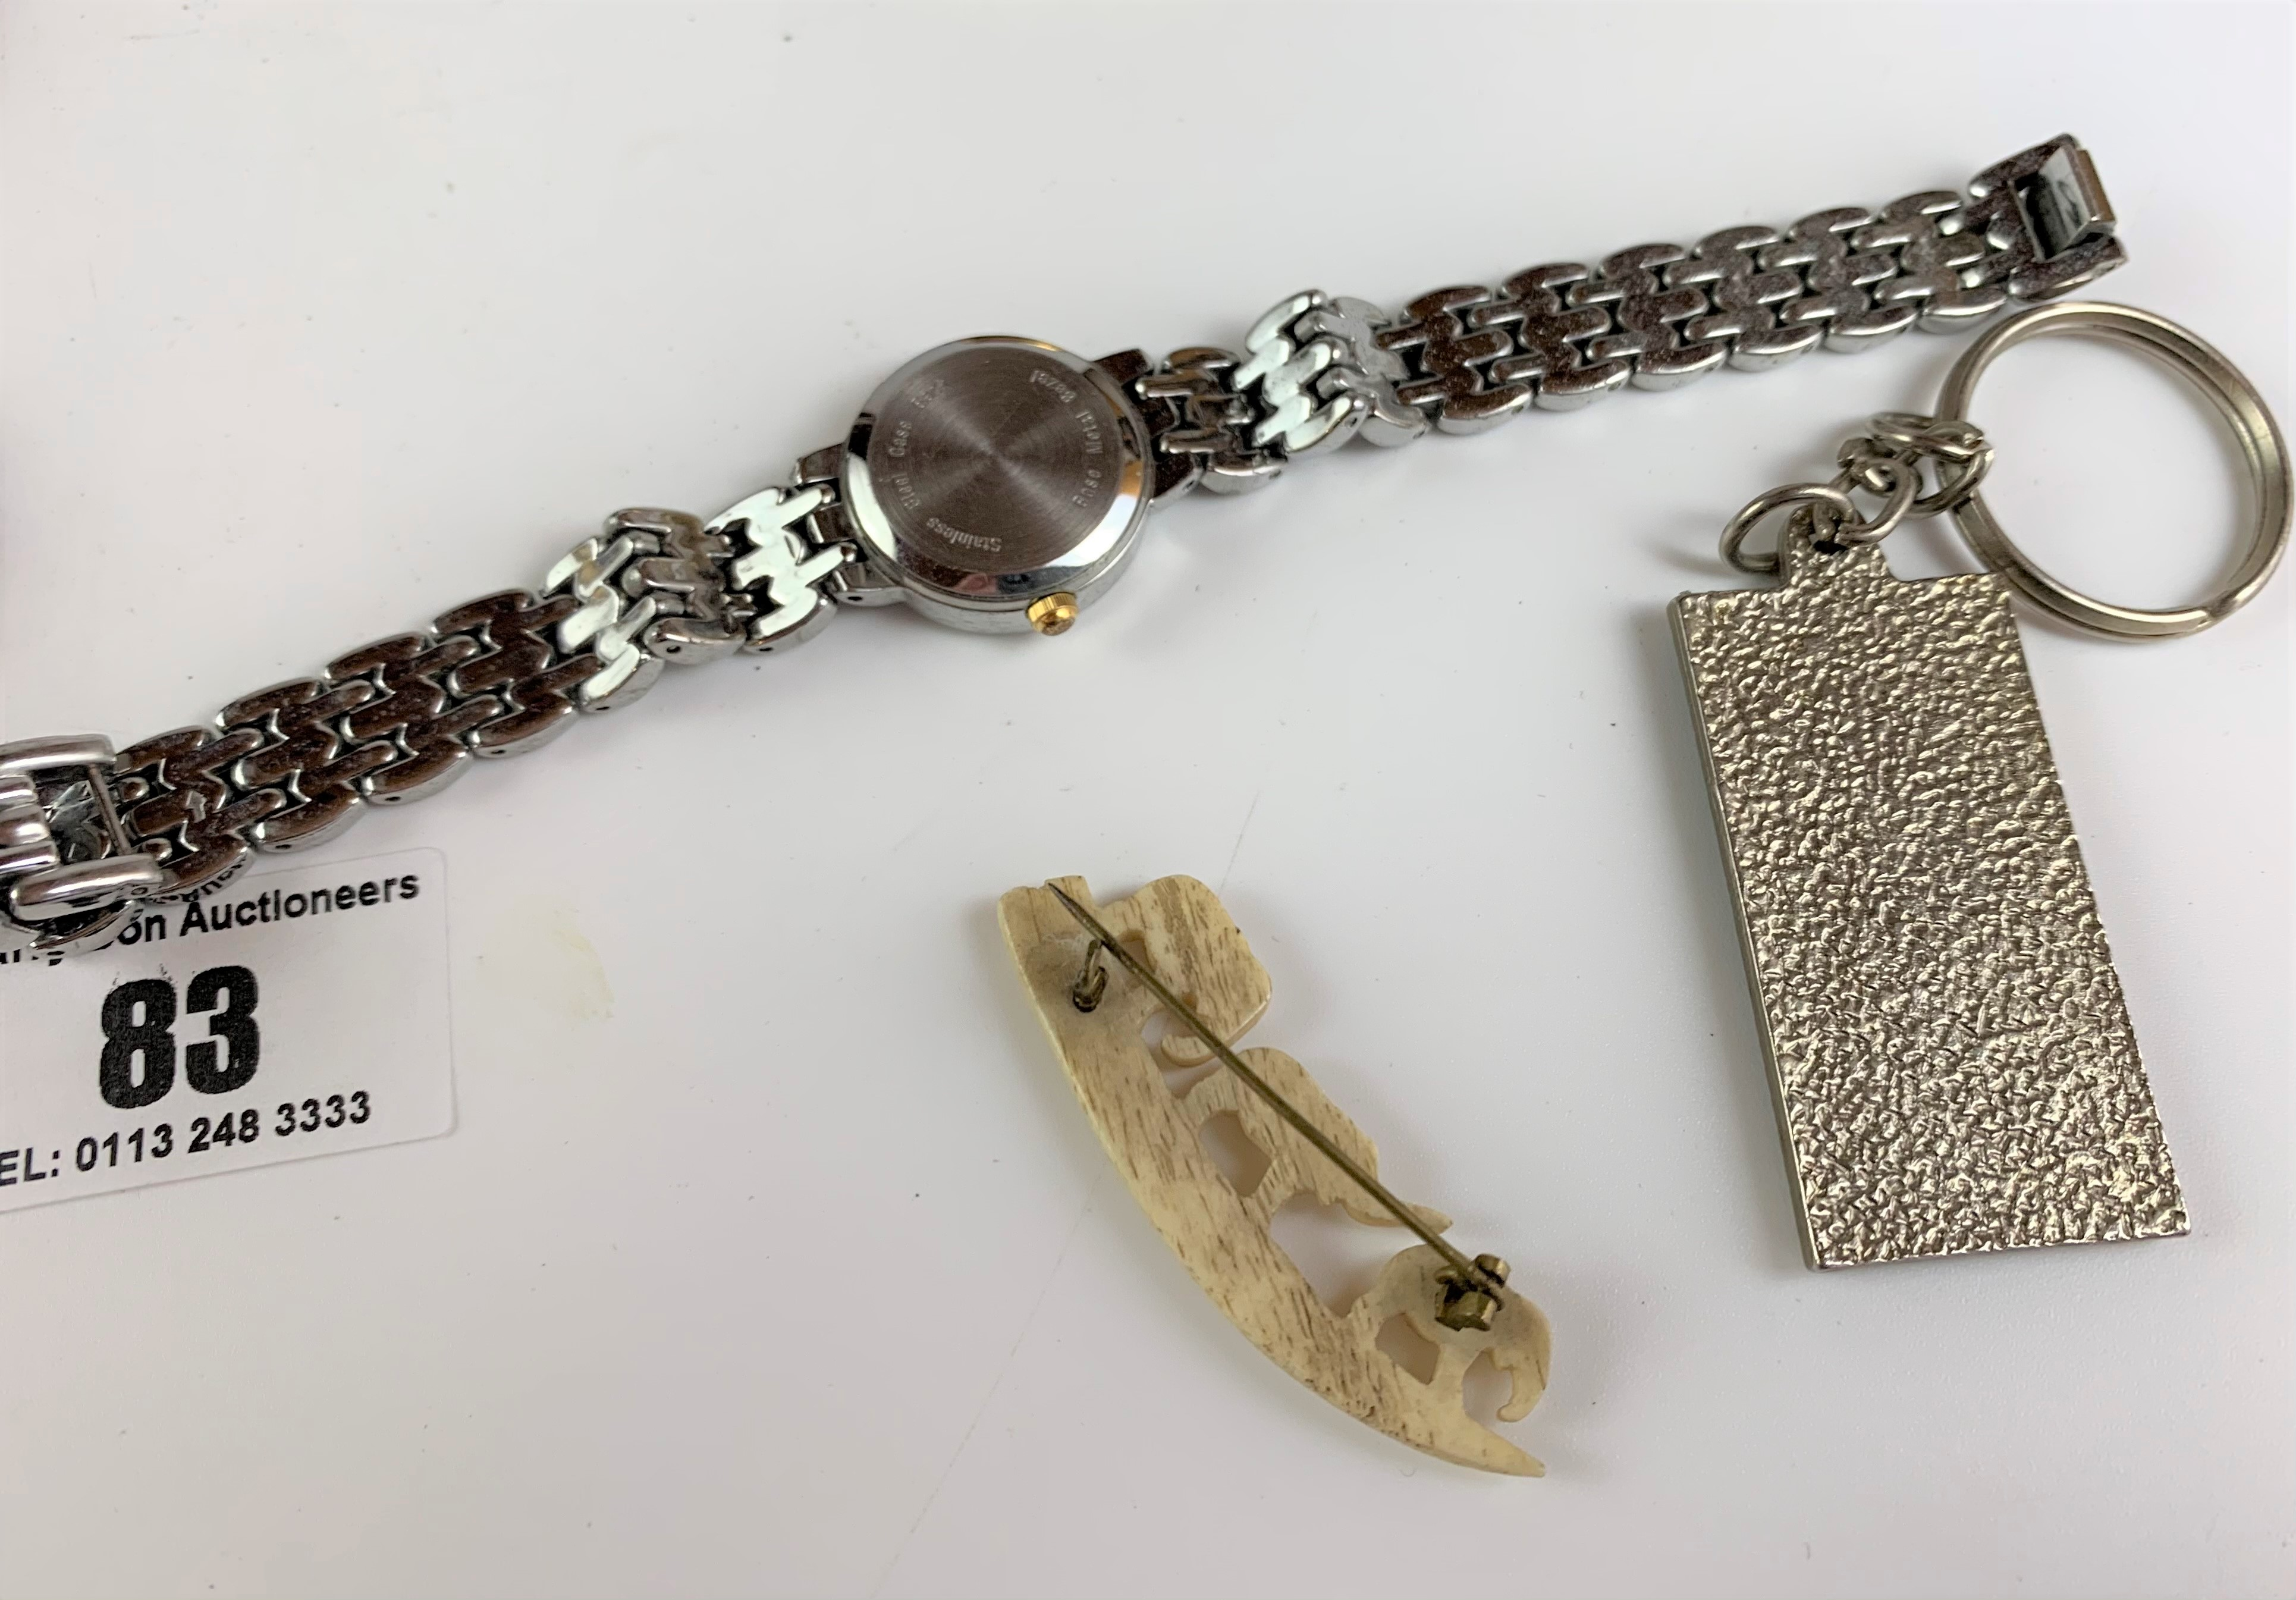 Bag of assorted dress watches, necklaces, keyrings and wooden mouse - Image 7 of 7